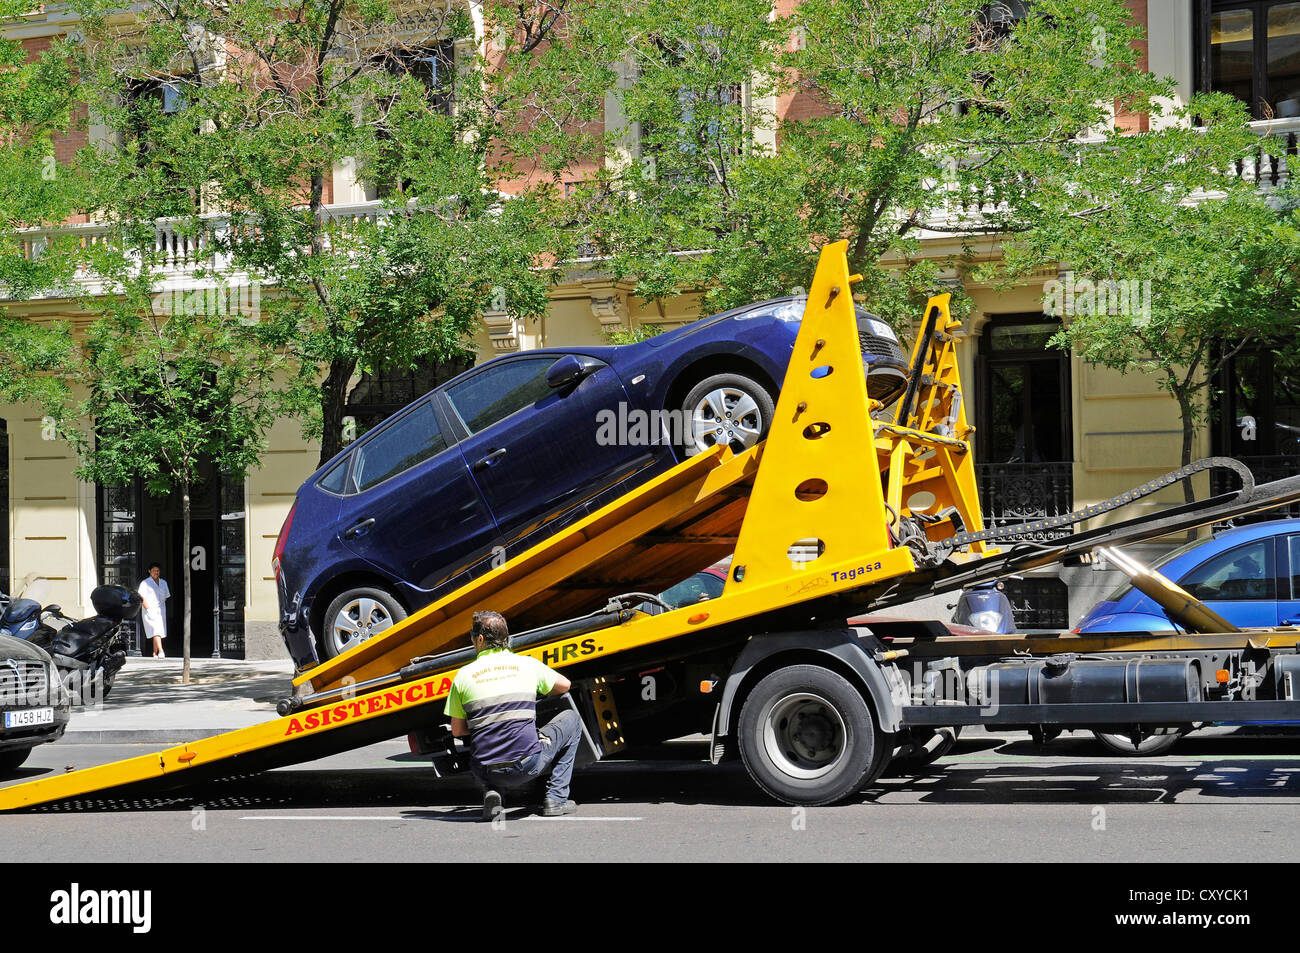 Tow truck, illegal parking, Madrid, Spain, Europe, PublicGround - Stock Image